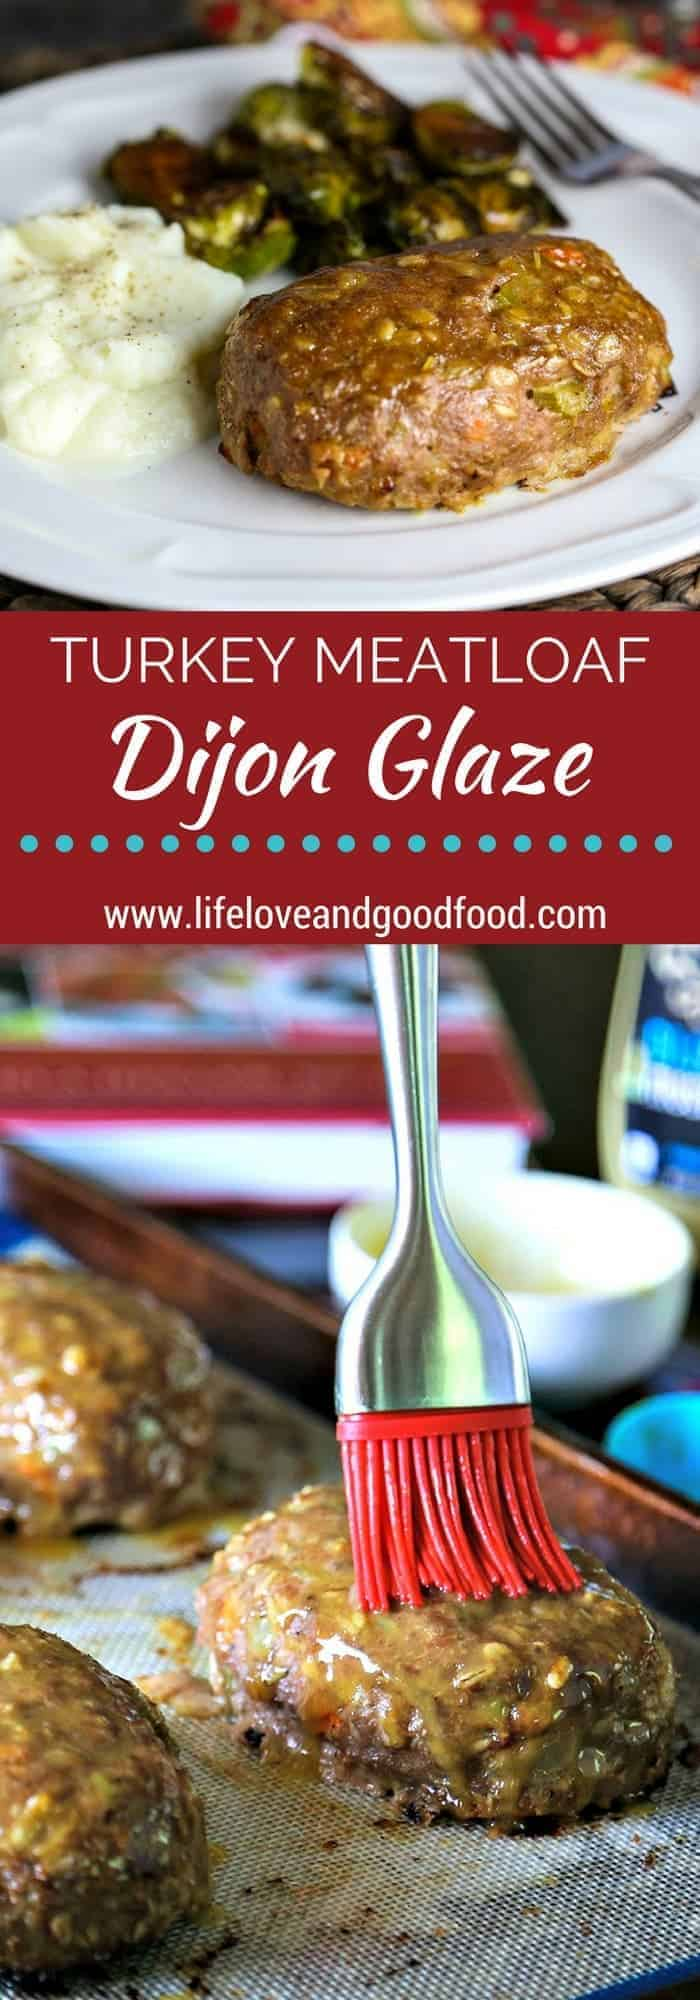 Try this lighter and healthier turkey meatloaf with its sweet and tangy honey Dijon glaze and you may never go back to Grandma's traditional recipe!